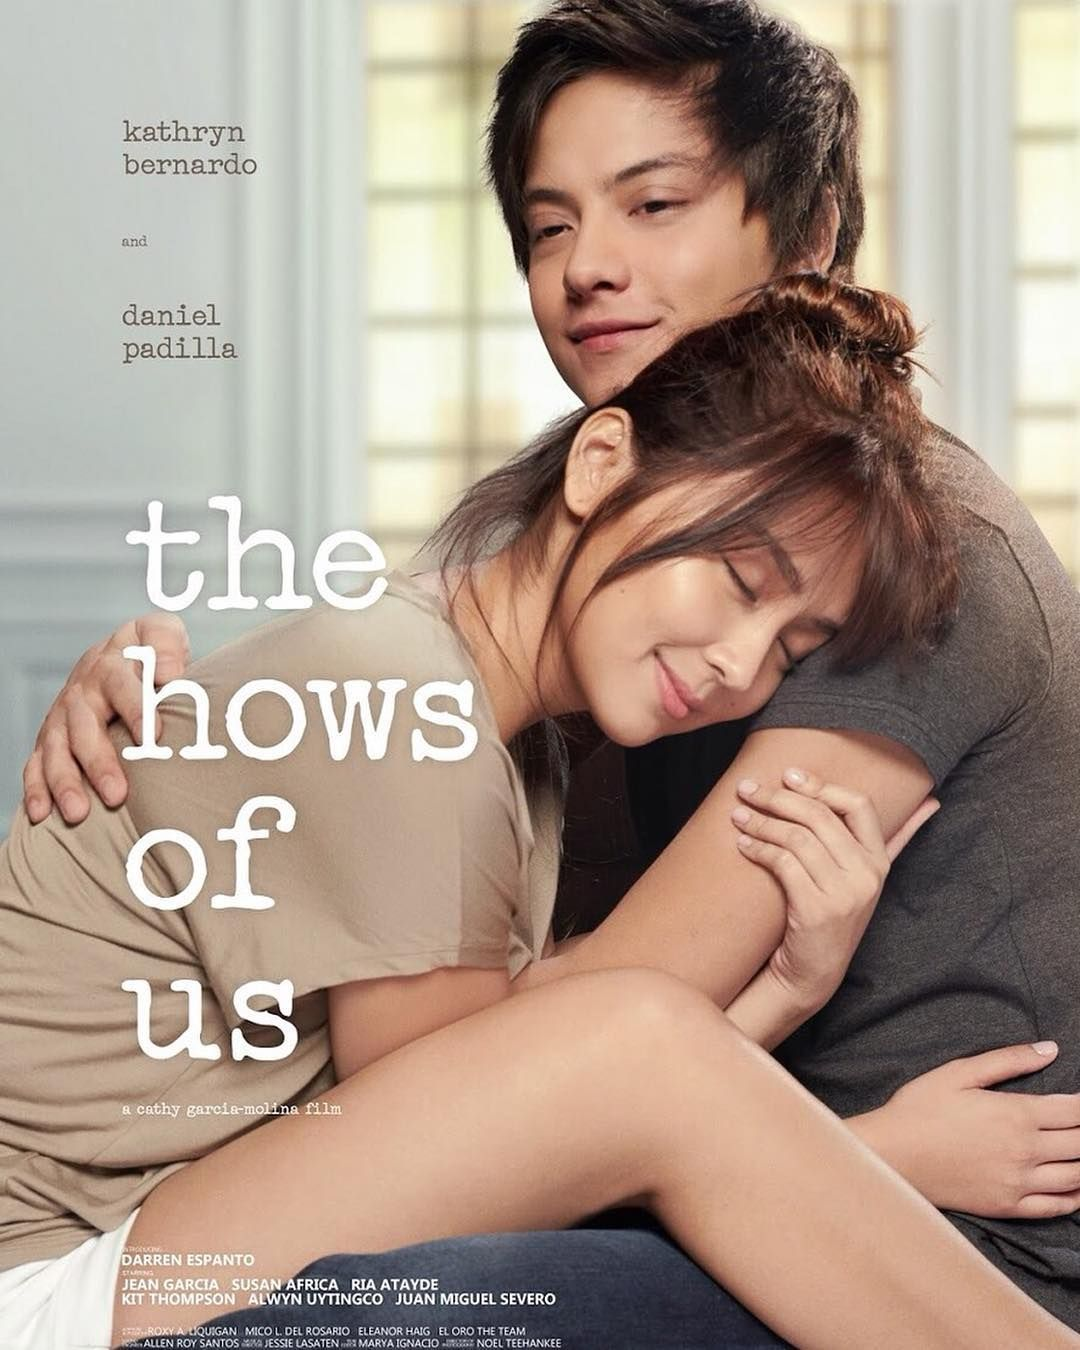 The Hows Of Us Earns P116 Million In 3 Days Full Movies Online Free This Is Us Movie Free Movies Online